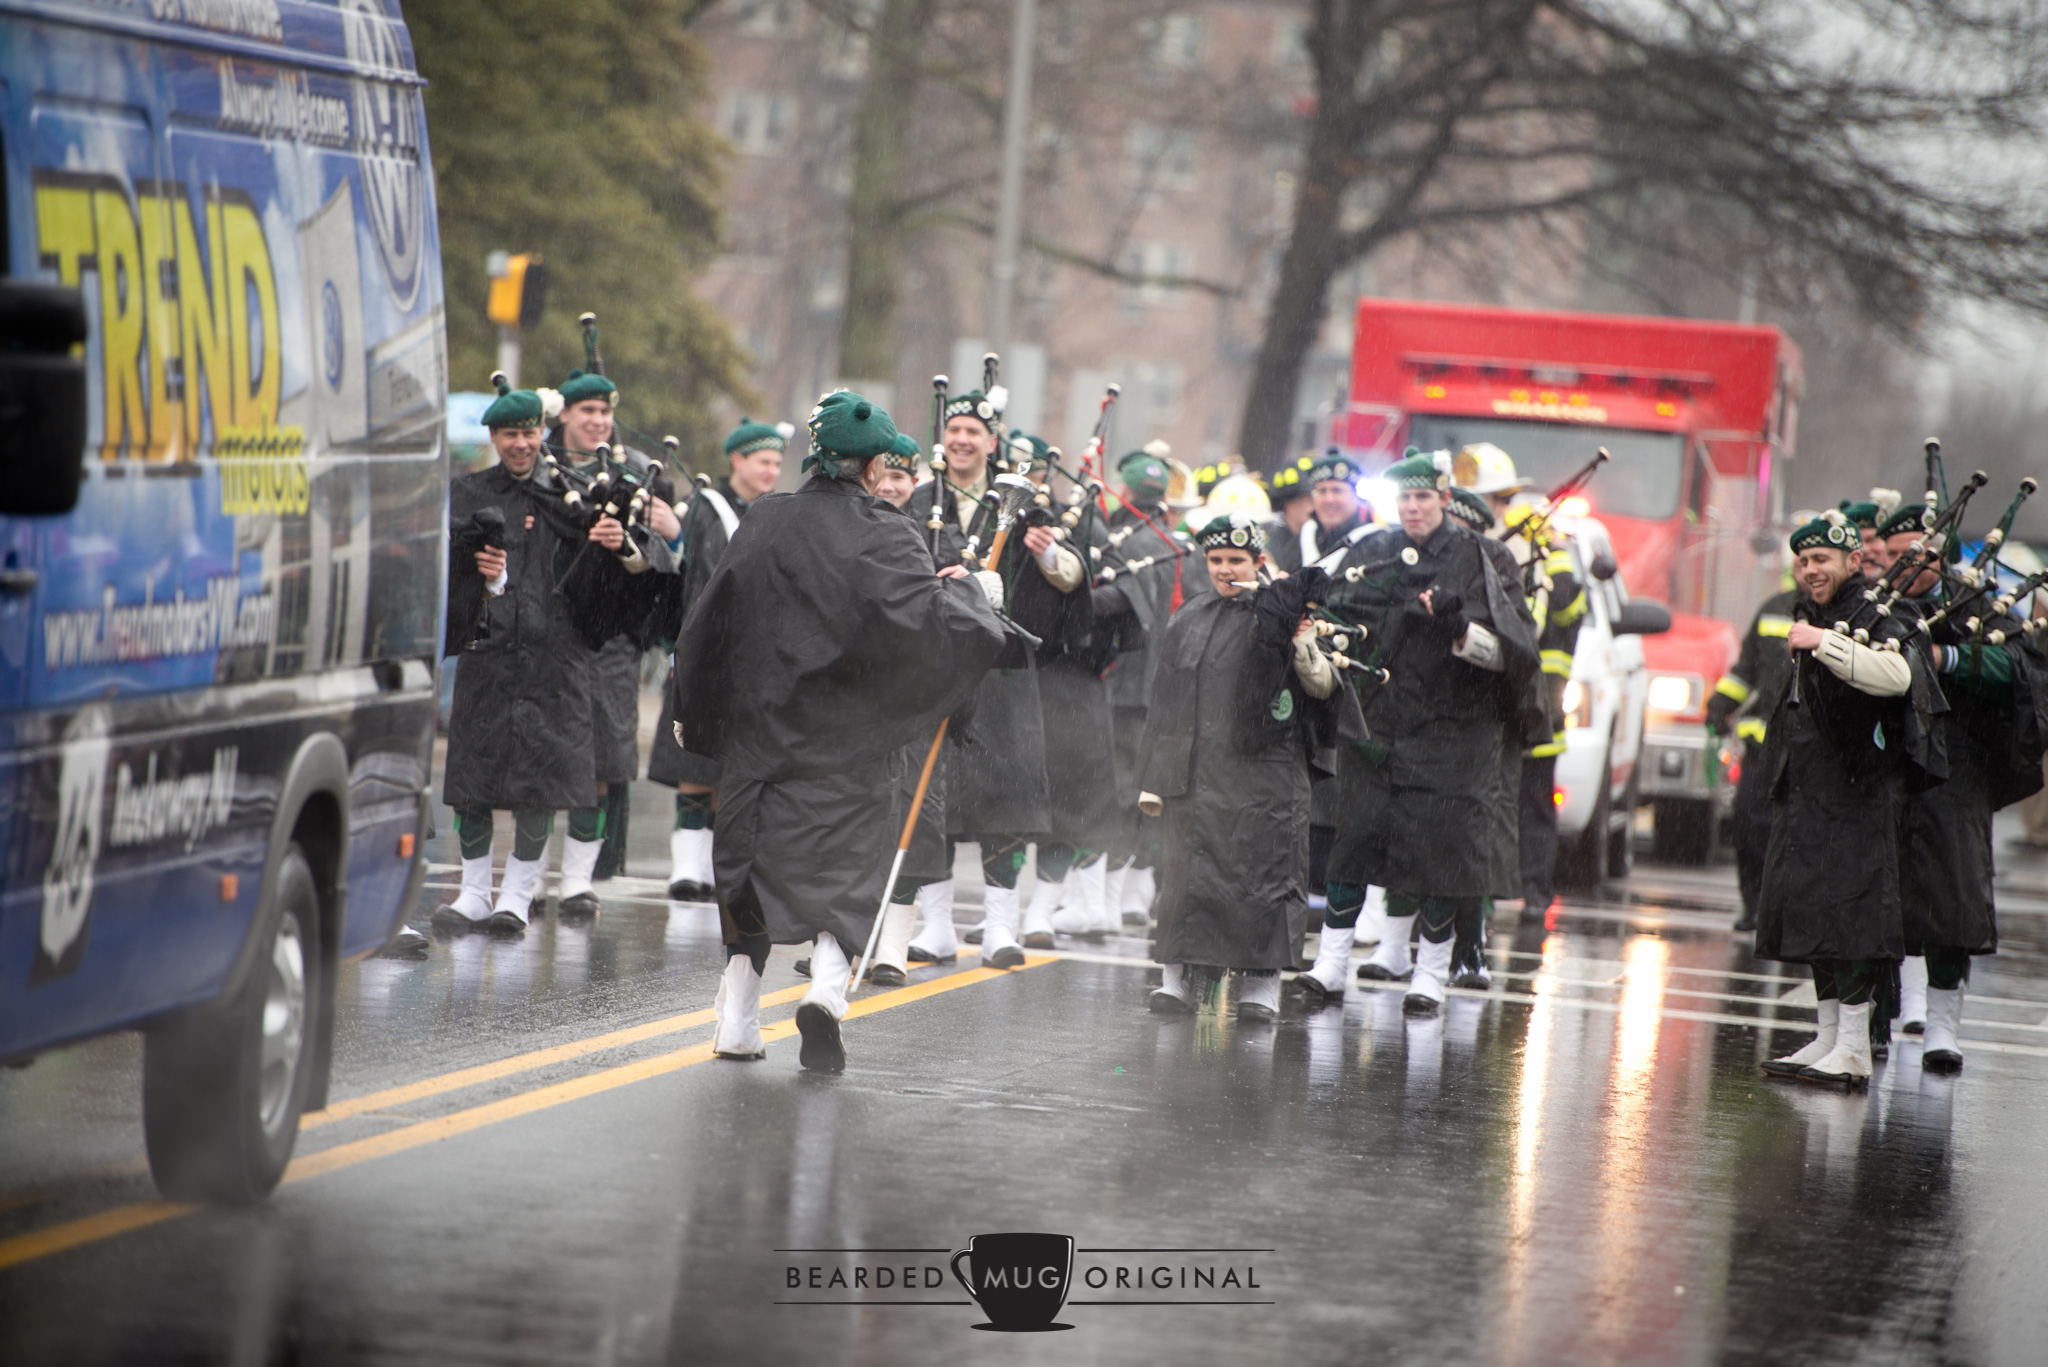 Waterproof your pipes: the bagpipers of the American Weldry Band won't let the soggy weather drown out their sound, or their smiles.